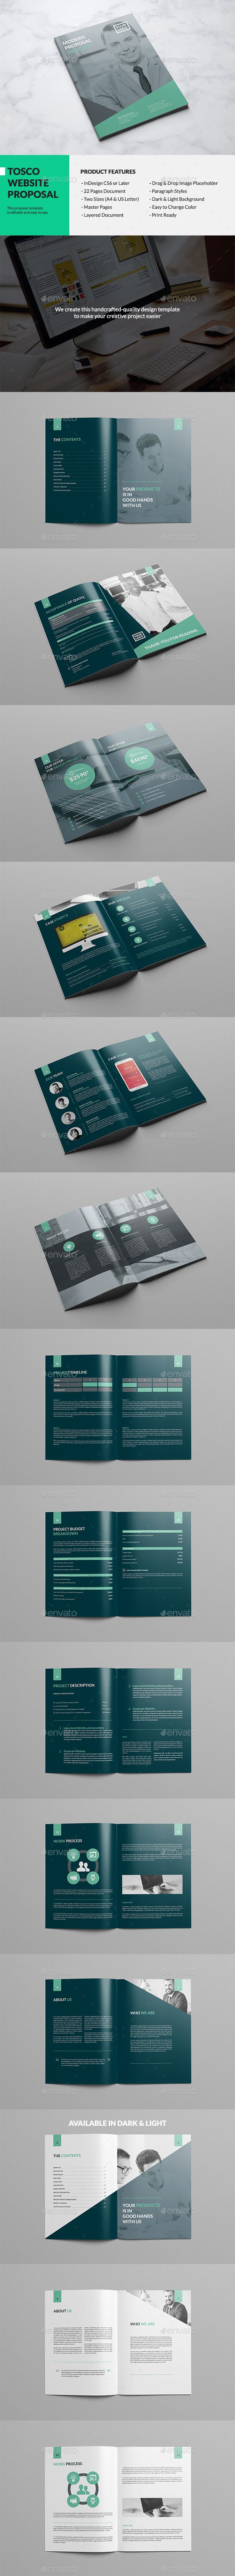 Tosco - Modern Website Proposal Template #design Download: http://graphicriver.net/item/tosco-modern-website-proposal/12984210?ref=ksioks